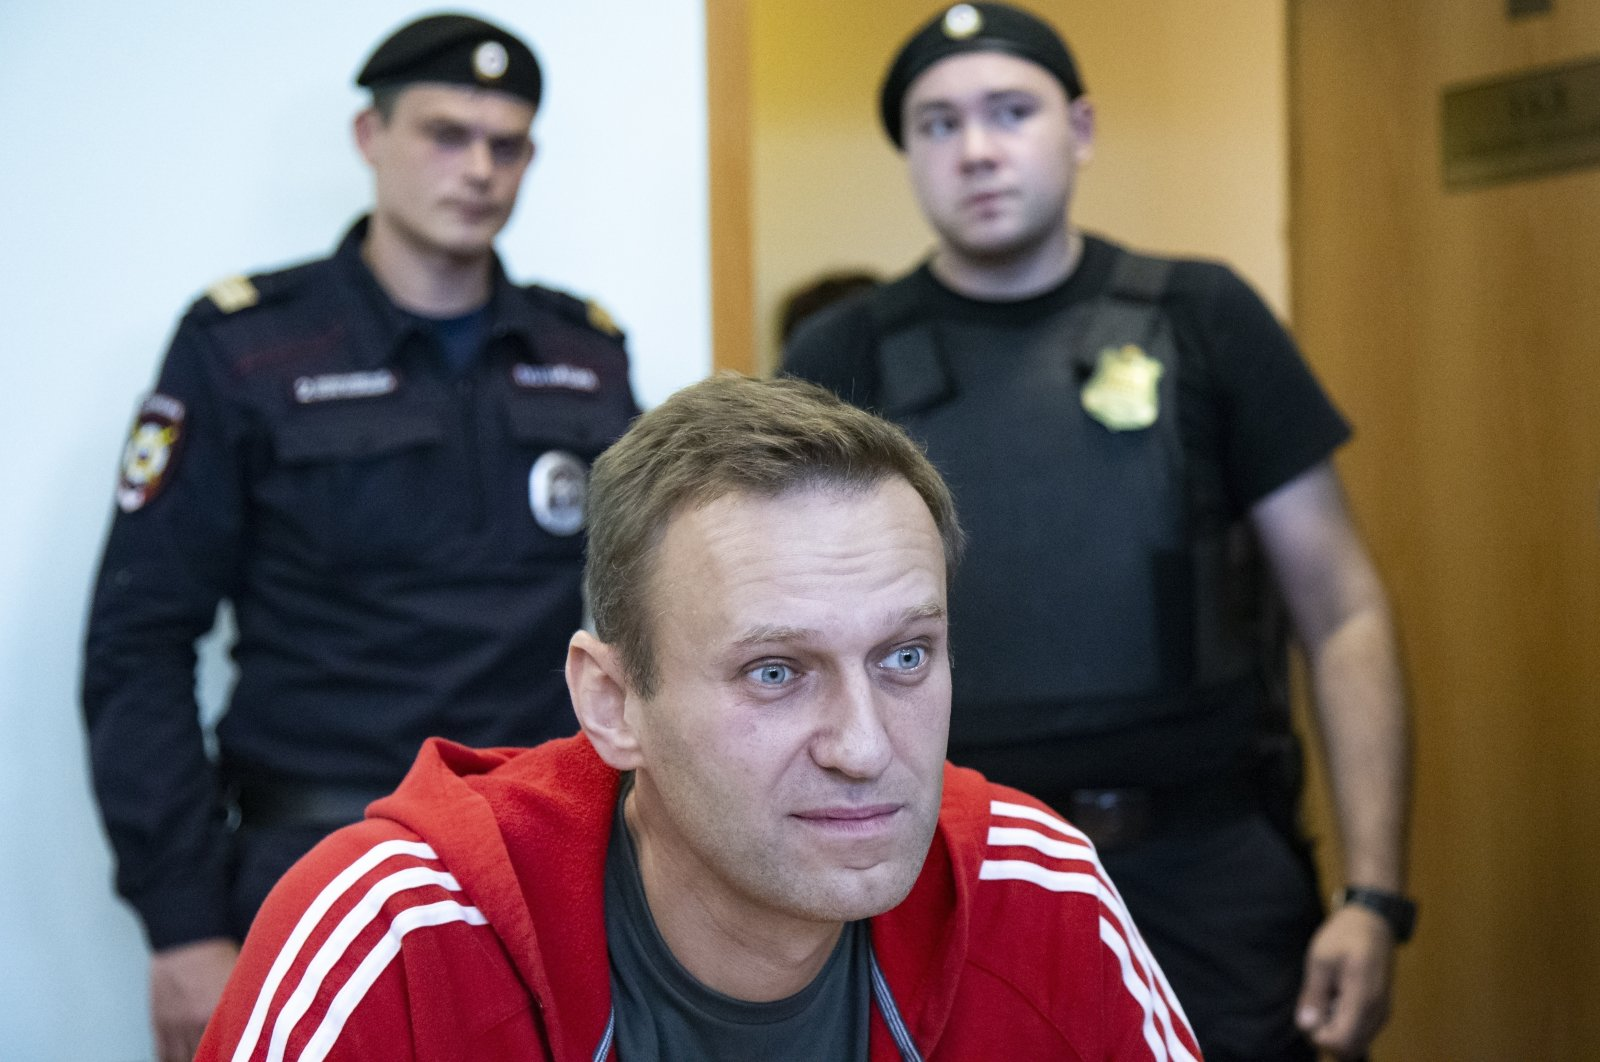 Russian opposition leader Alexei Navalny speaks to the media prior to a court session in Moscow, Russia, Aug. 22, 2019. (AP Photo)